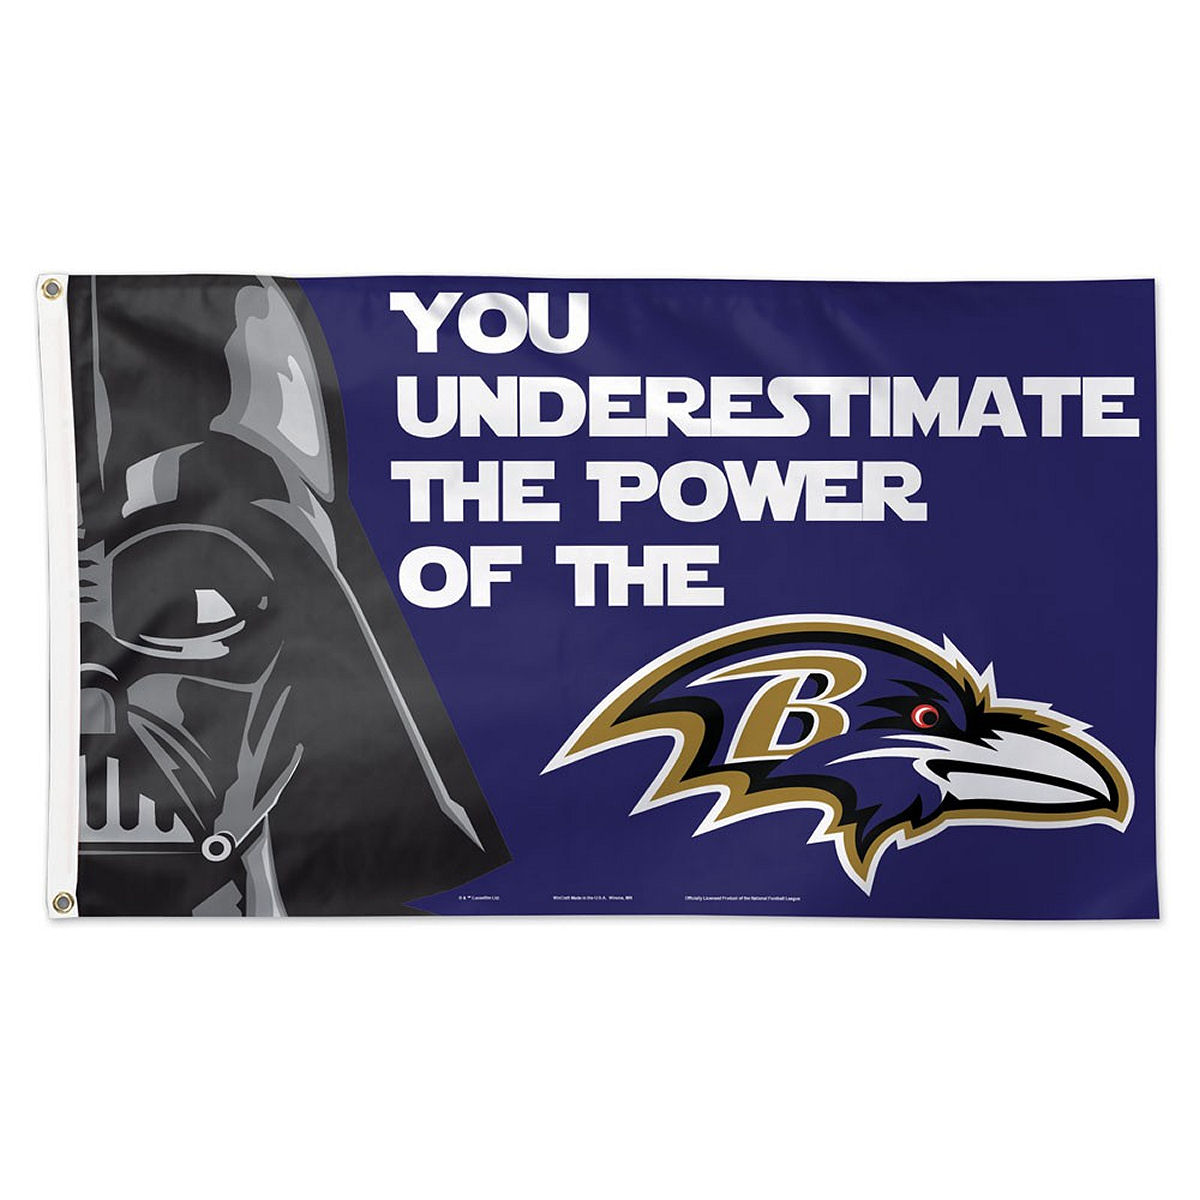 Baltimore Ravens Official NFL 3' x 5' Star Wars Darth Vader Banner Flag by Wincraft